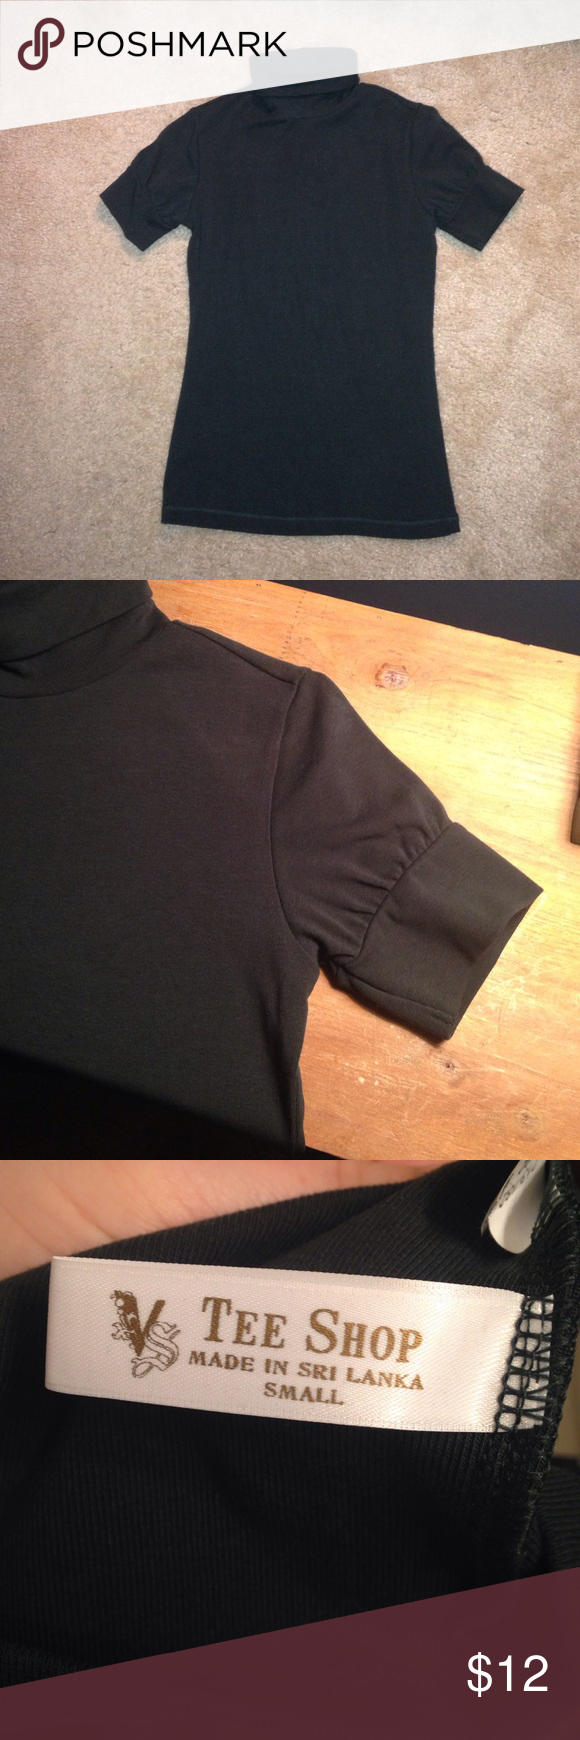 Tee Shop Short sleeve turtle neck purchased from Victoria's Secret. Never washed or worn. The true color is a dark, hunter green but for some reason it's looking black in the photos . No damages 👍🏼 Tops Tees - Short Sleeve